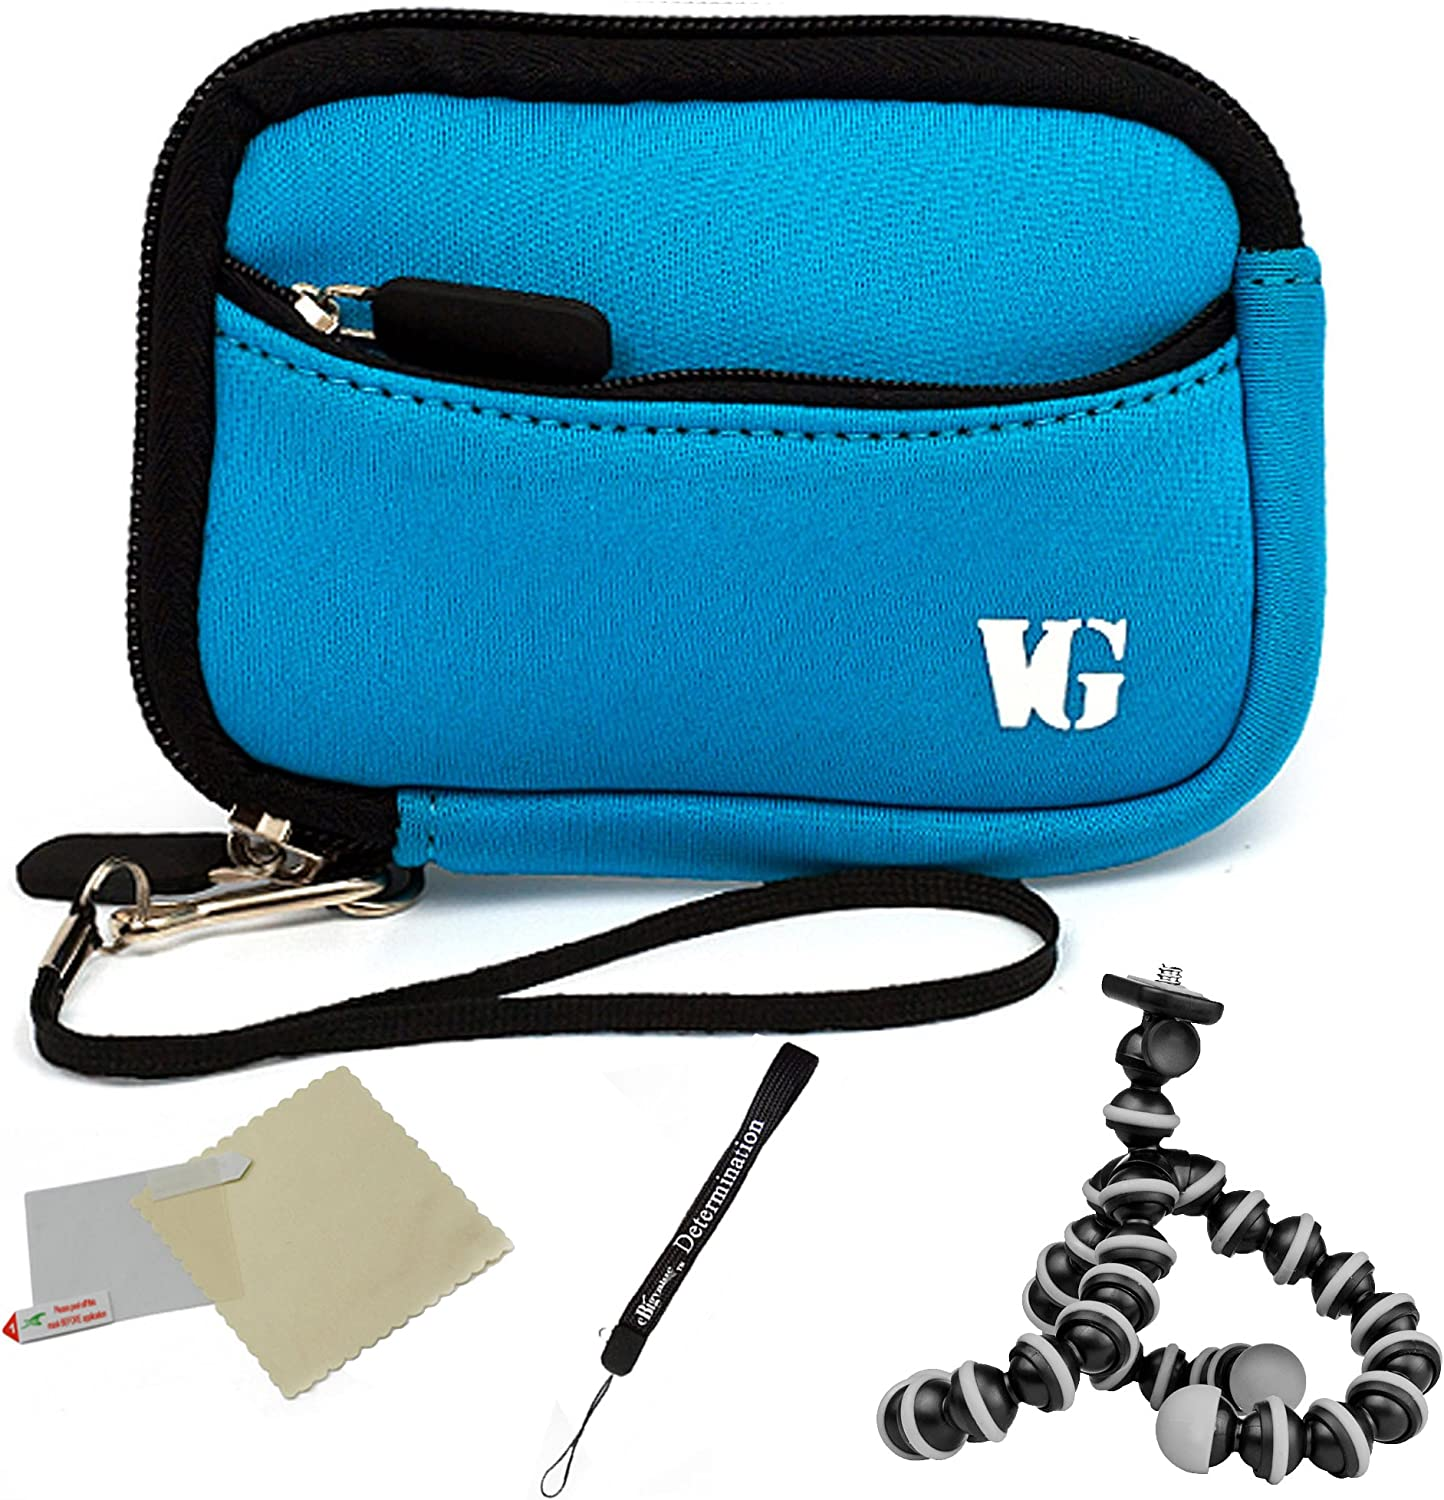 Protective Durable Neoprene Mini Glove Pouch for Nikon Coolpix S Compact Cameras and Screen Protector and Mini Tripod Baby Blue